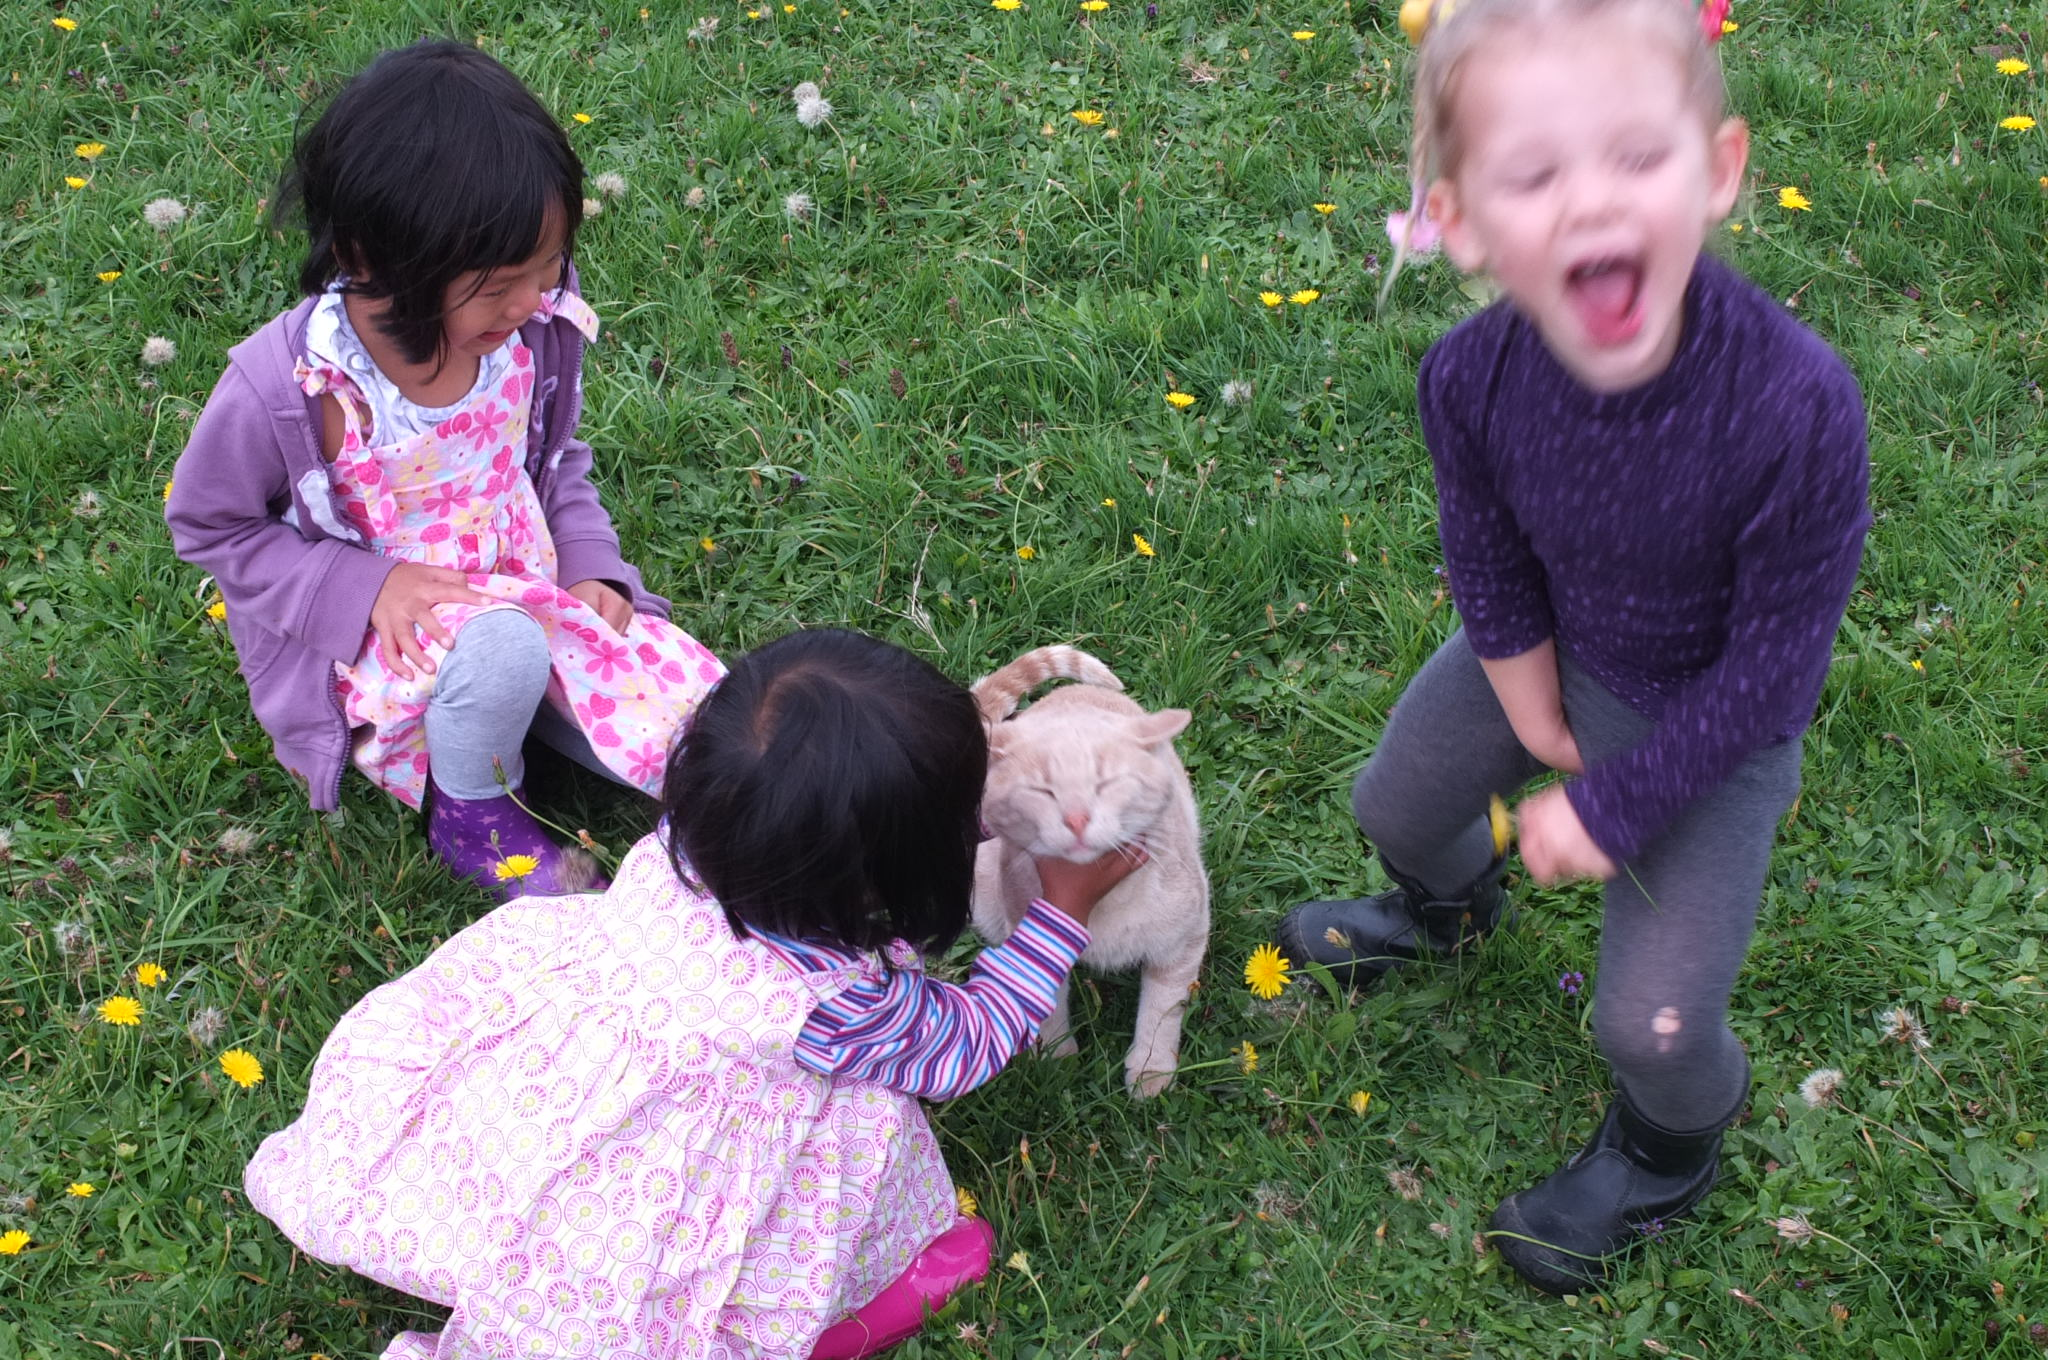 Our girls enjoyed playing with Leela and her cats.